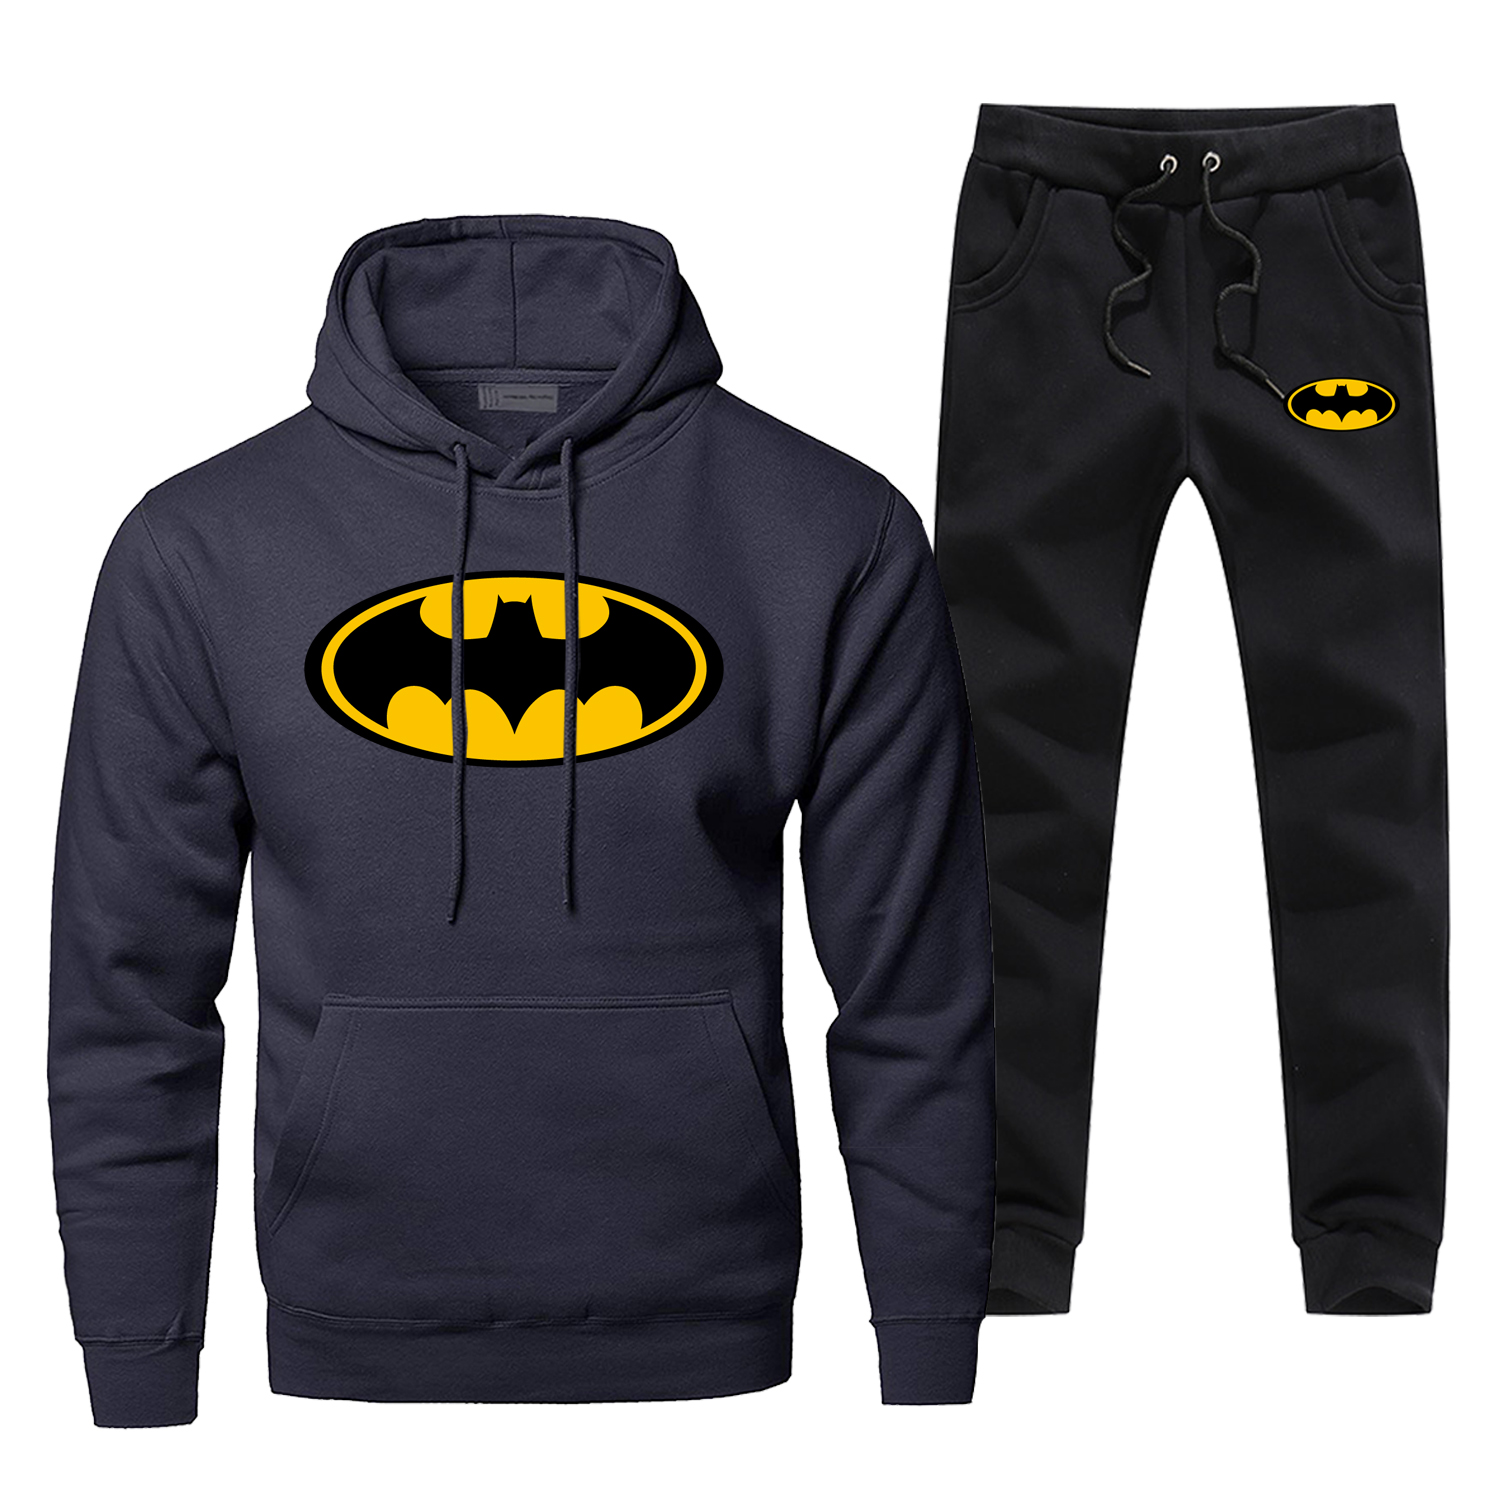 Batman Print Fashion Men's Full Suit Tracksuit Superhero Bat Man Sweatpants Fitness Warm Streetwear Hoodies For Men 2 Piece Set